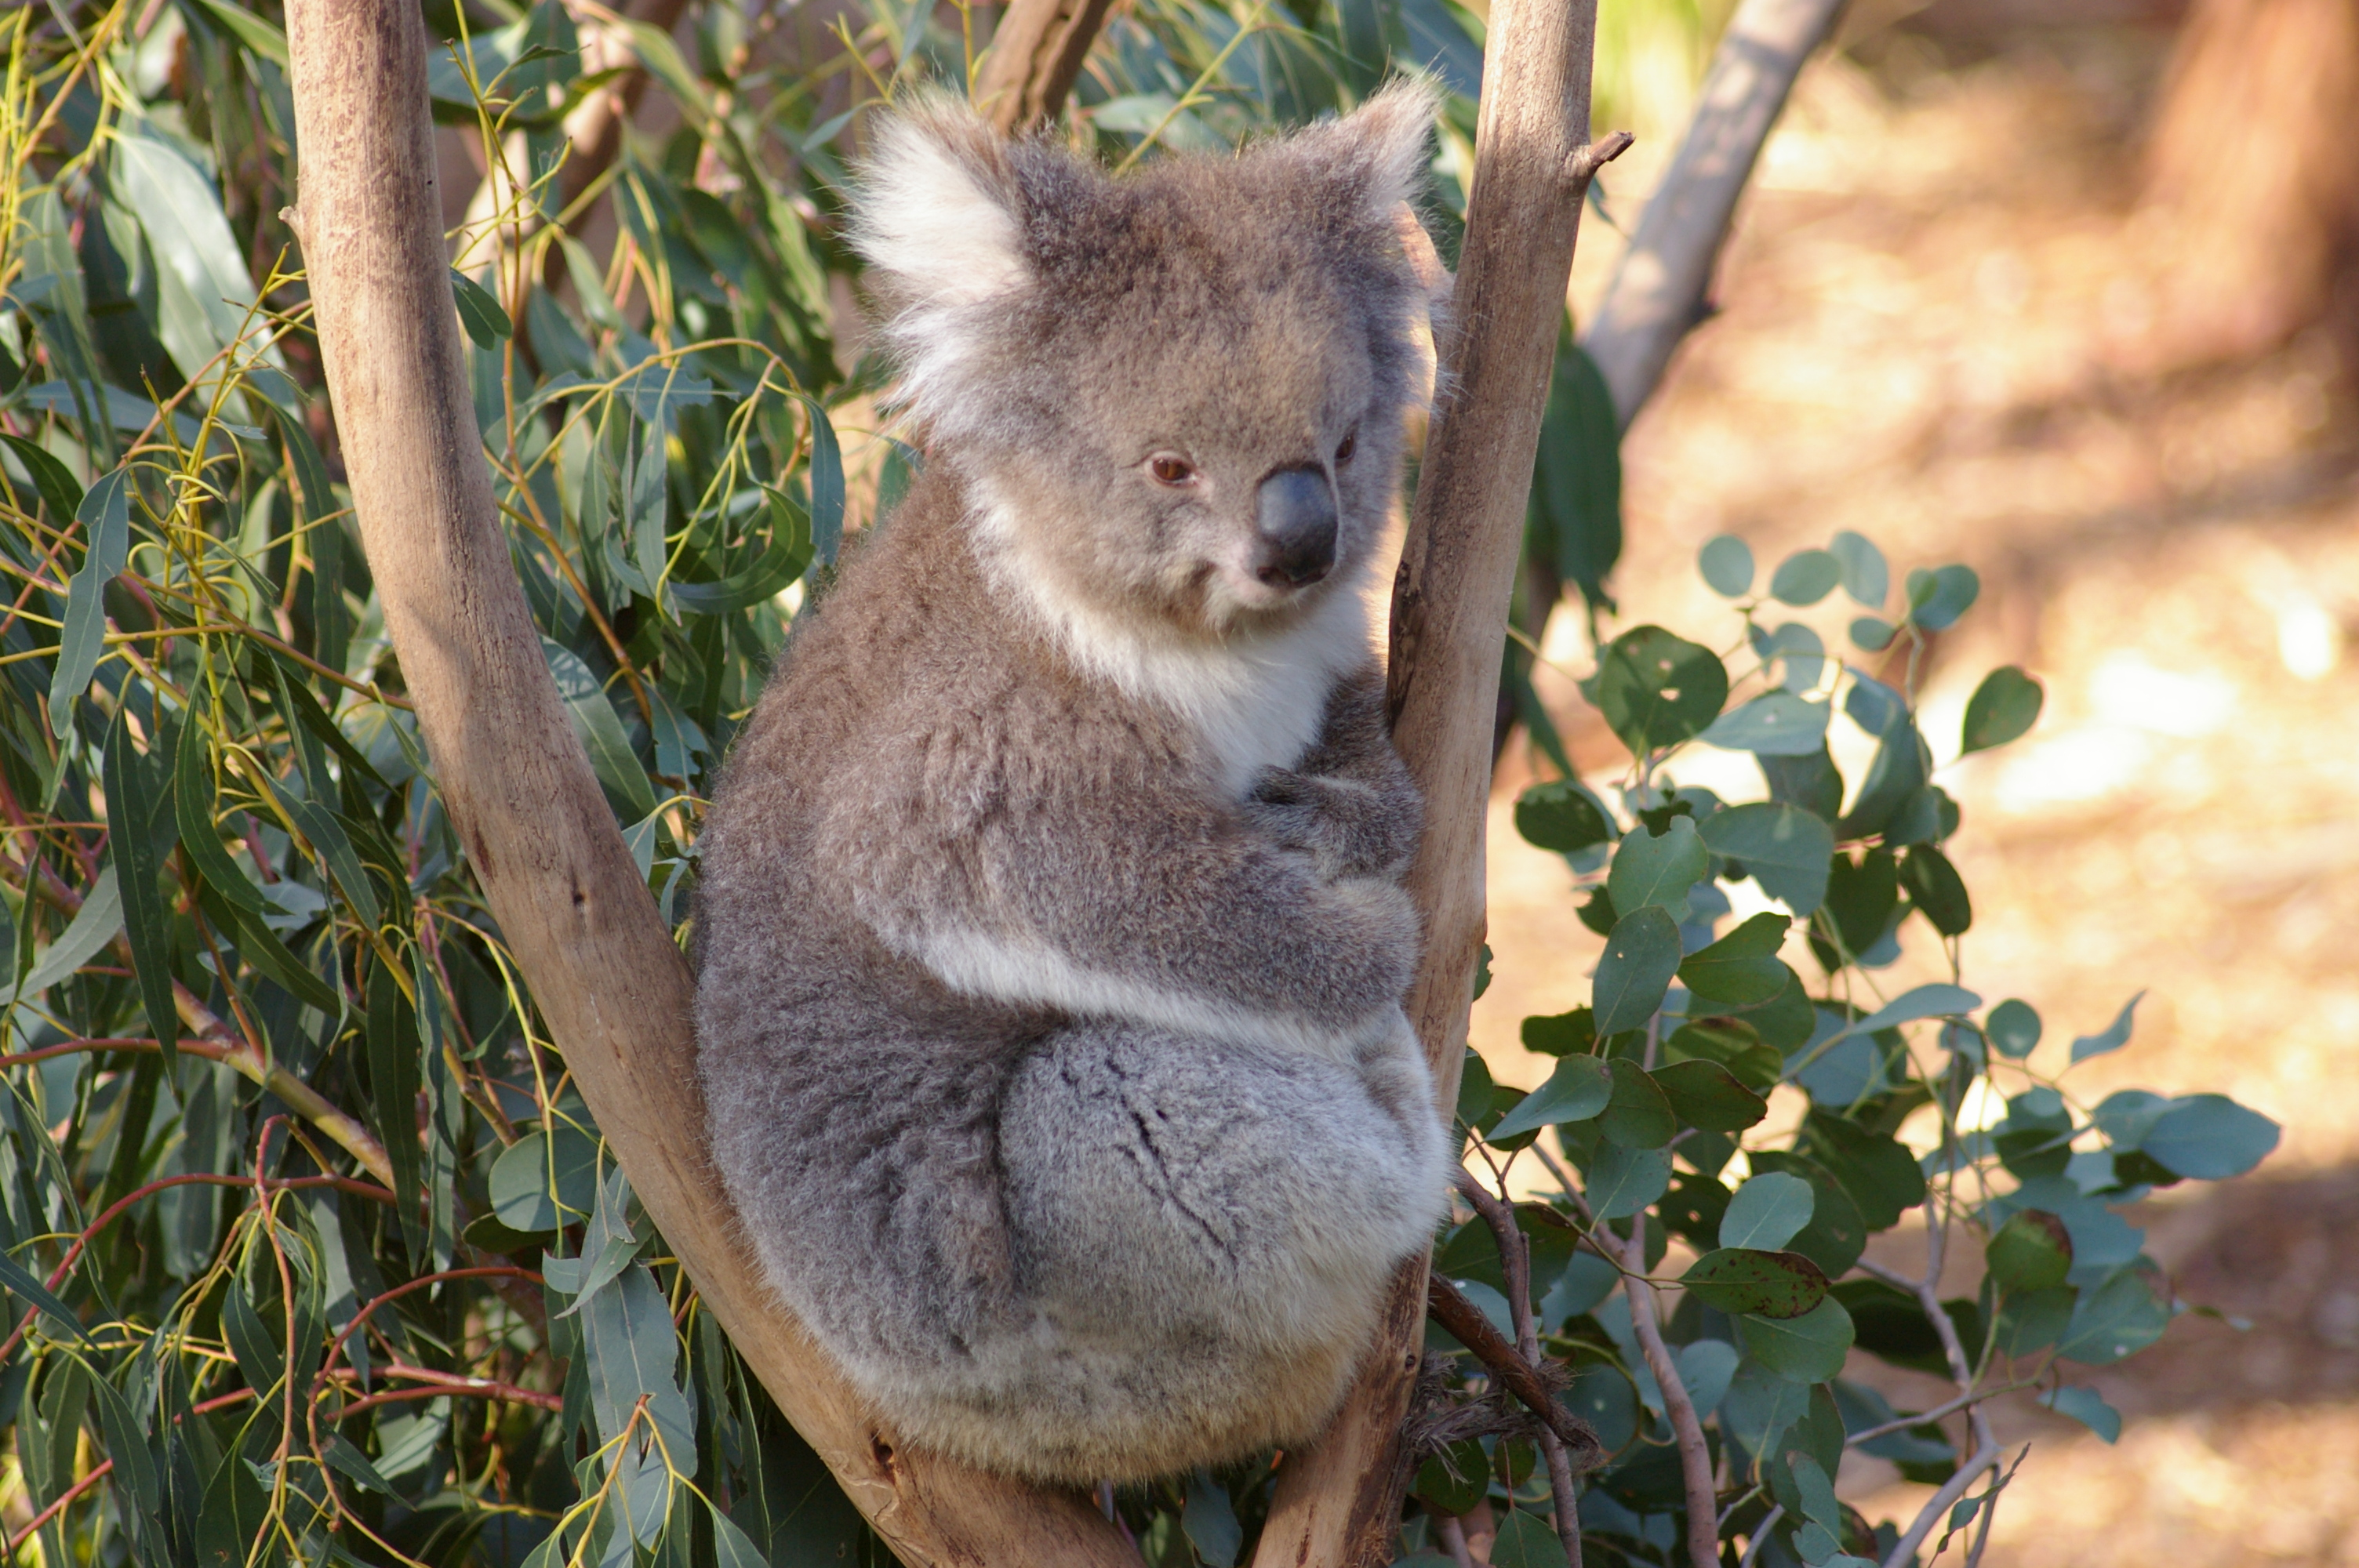 Image Of Koala In Smithsonian Museum Of Natural History